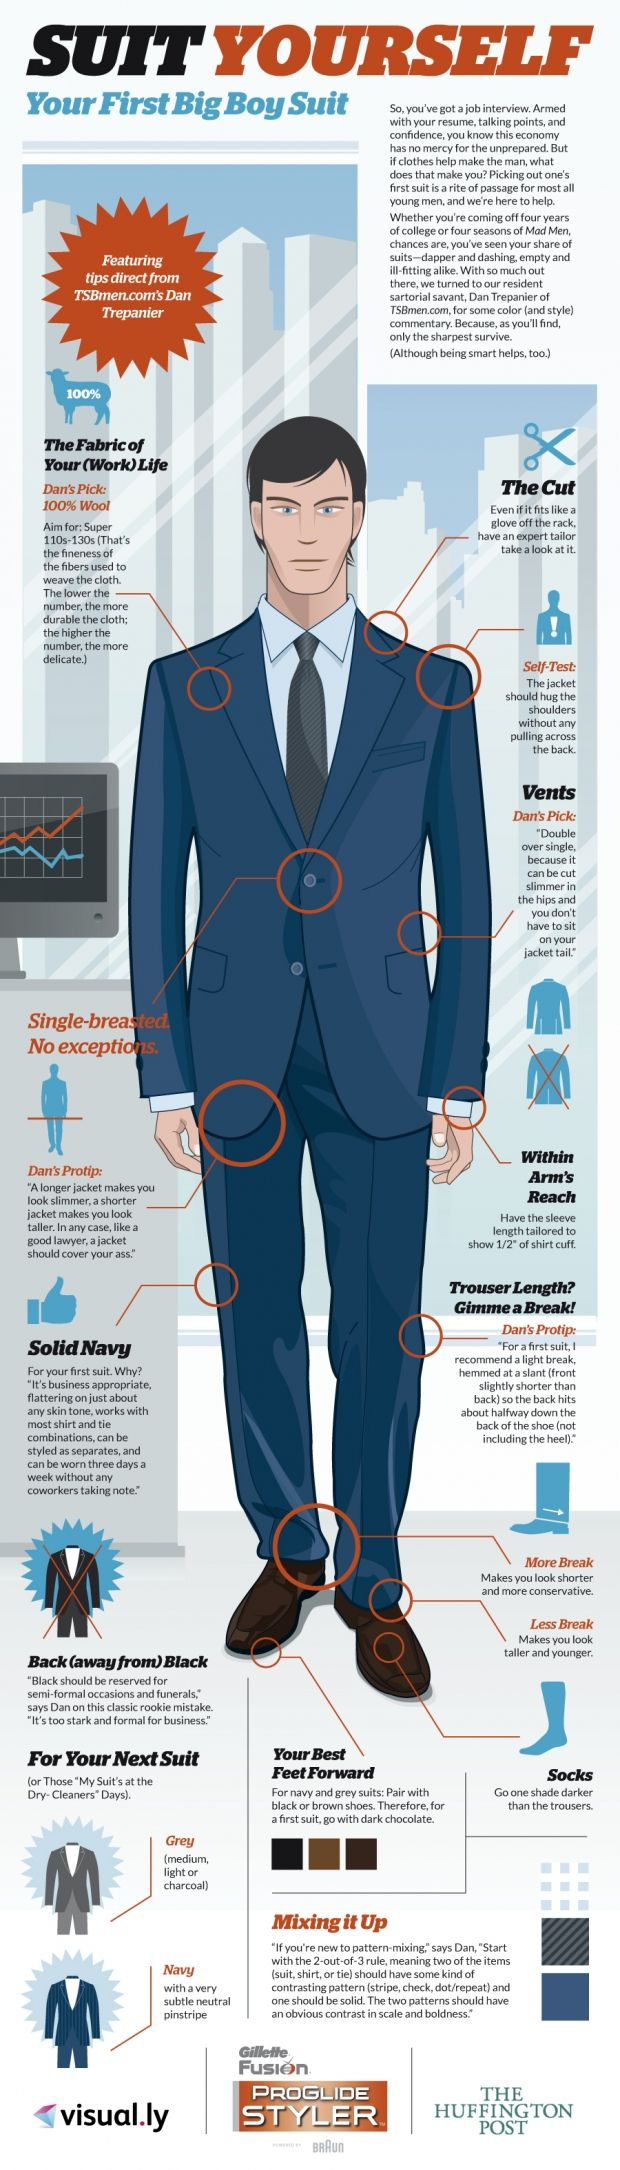 Suit Yourself: Your First Big Boy Suit! | NerdGraph Infographics